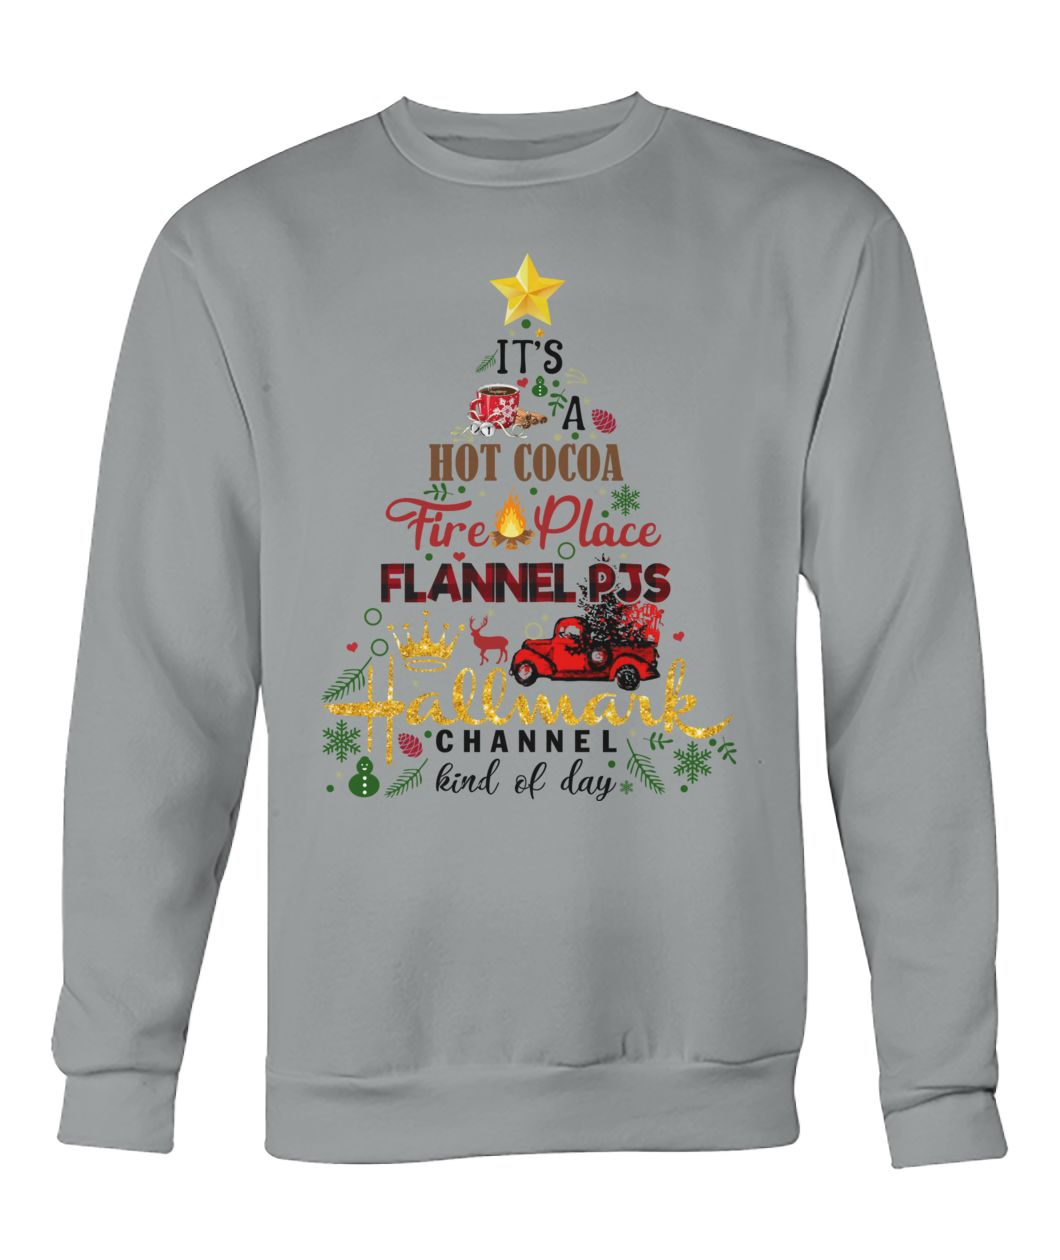 It's a hot cocoa fireplace flannel pjs Hallmark channel sweater